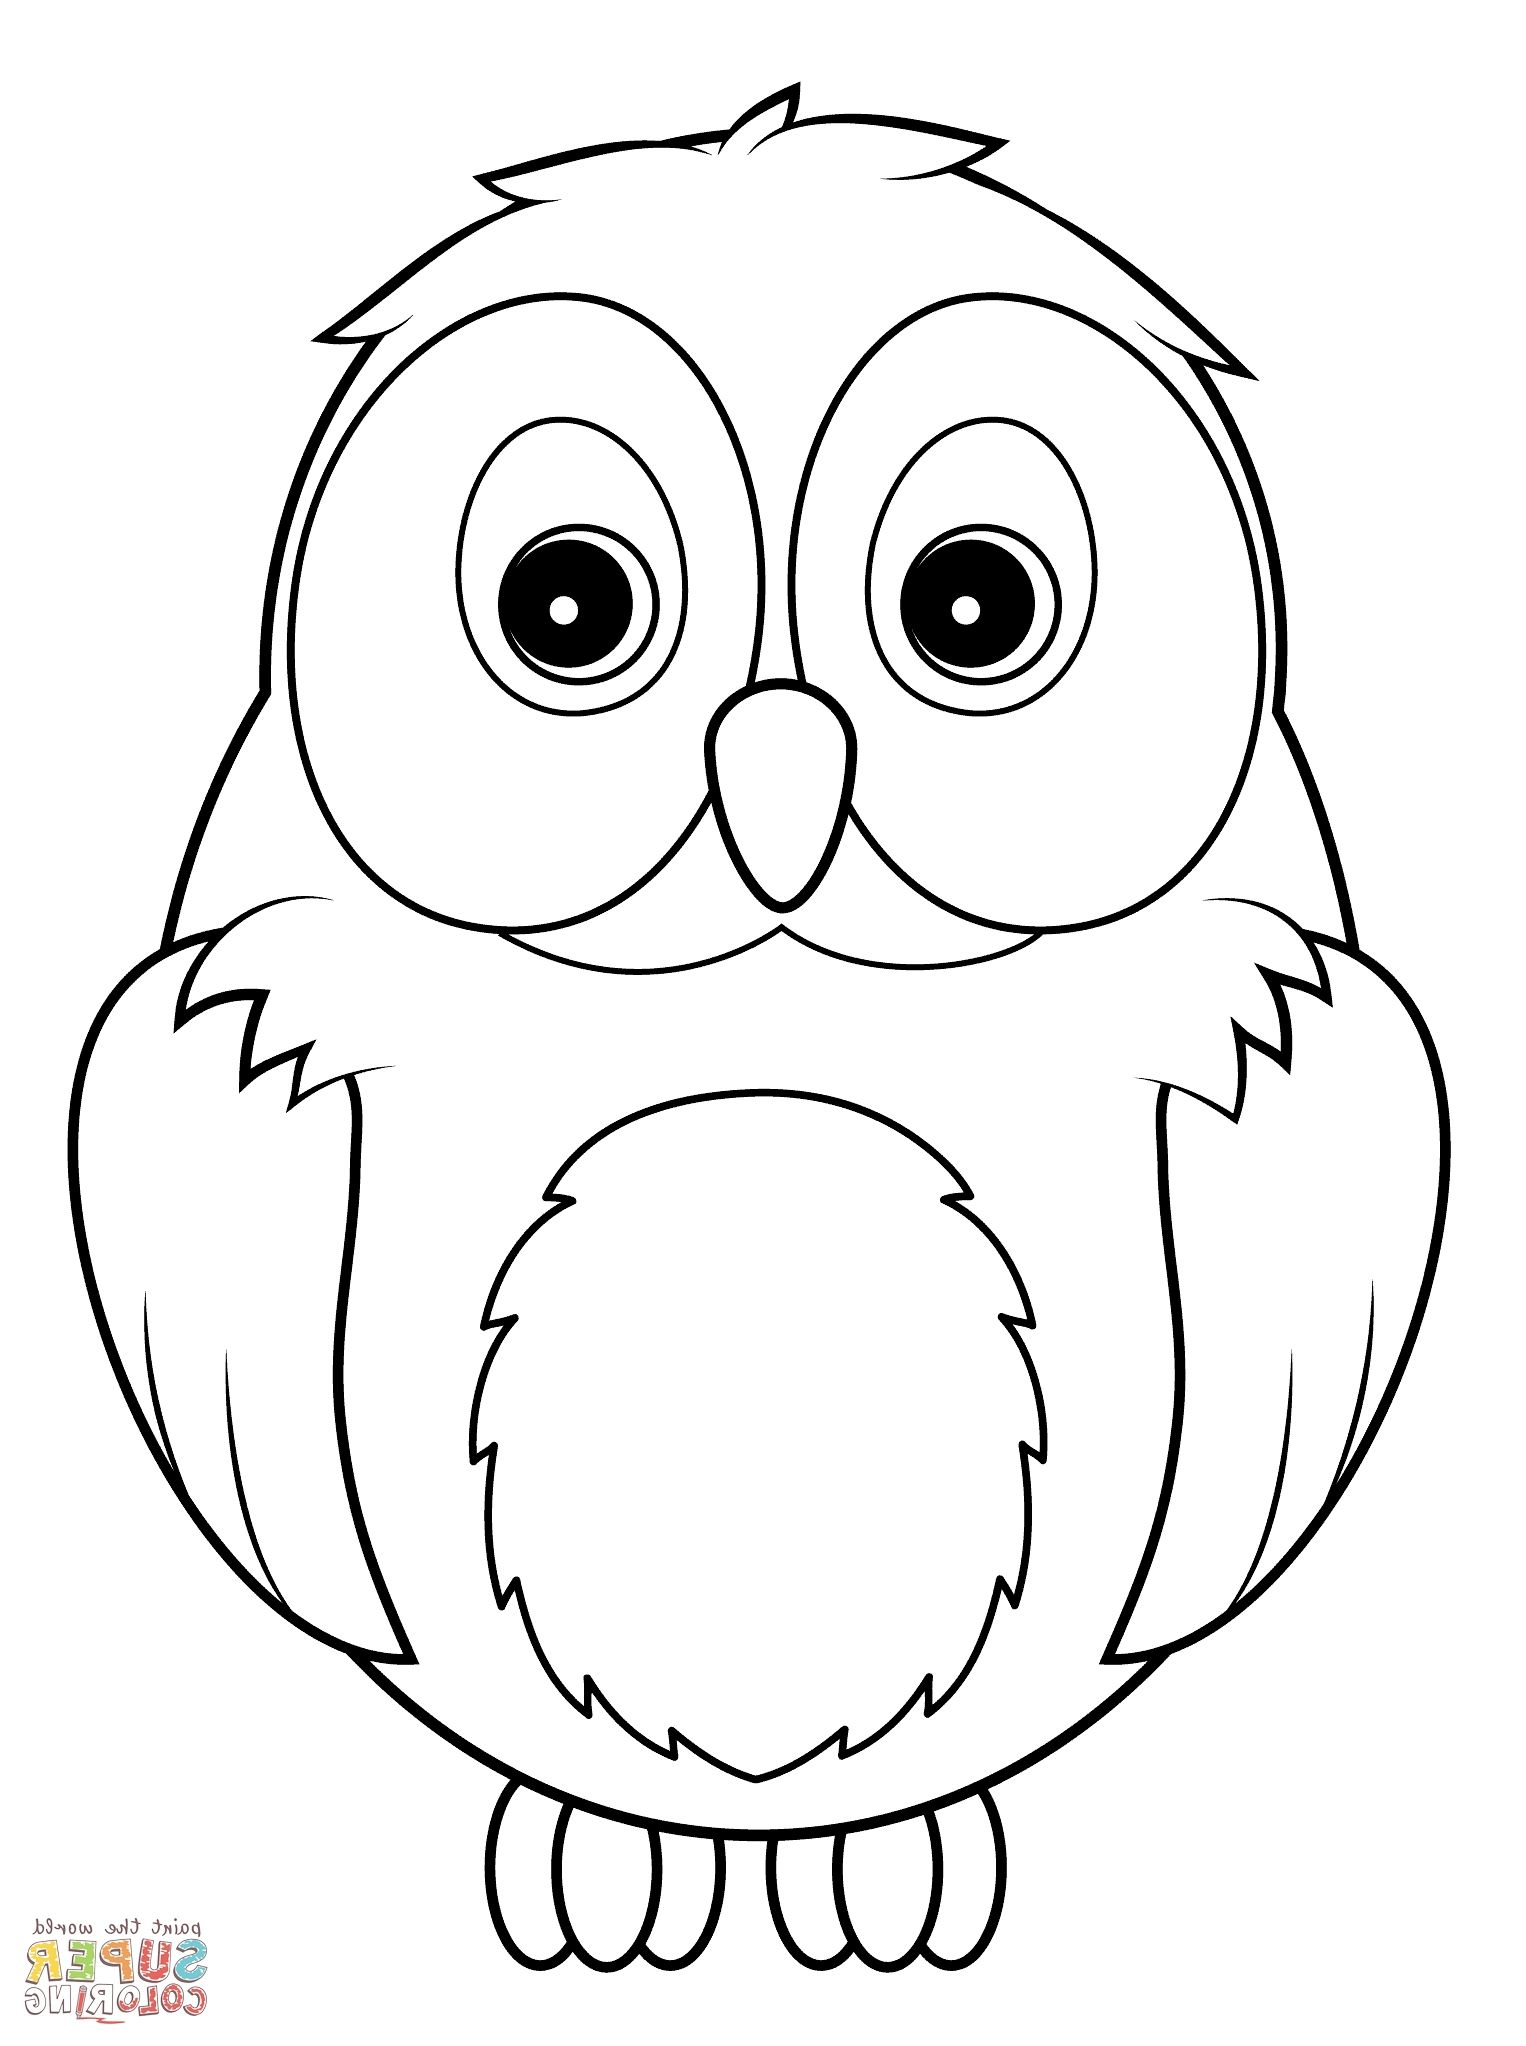 Owl Coloring Owl Coloring Pages Owls Drawing Animal Coloring Pages